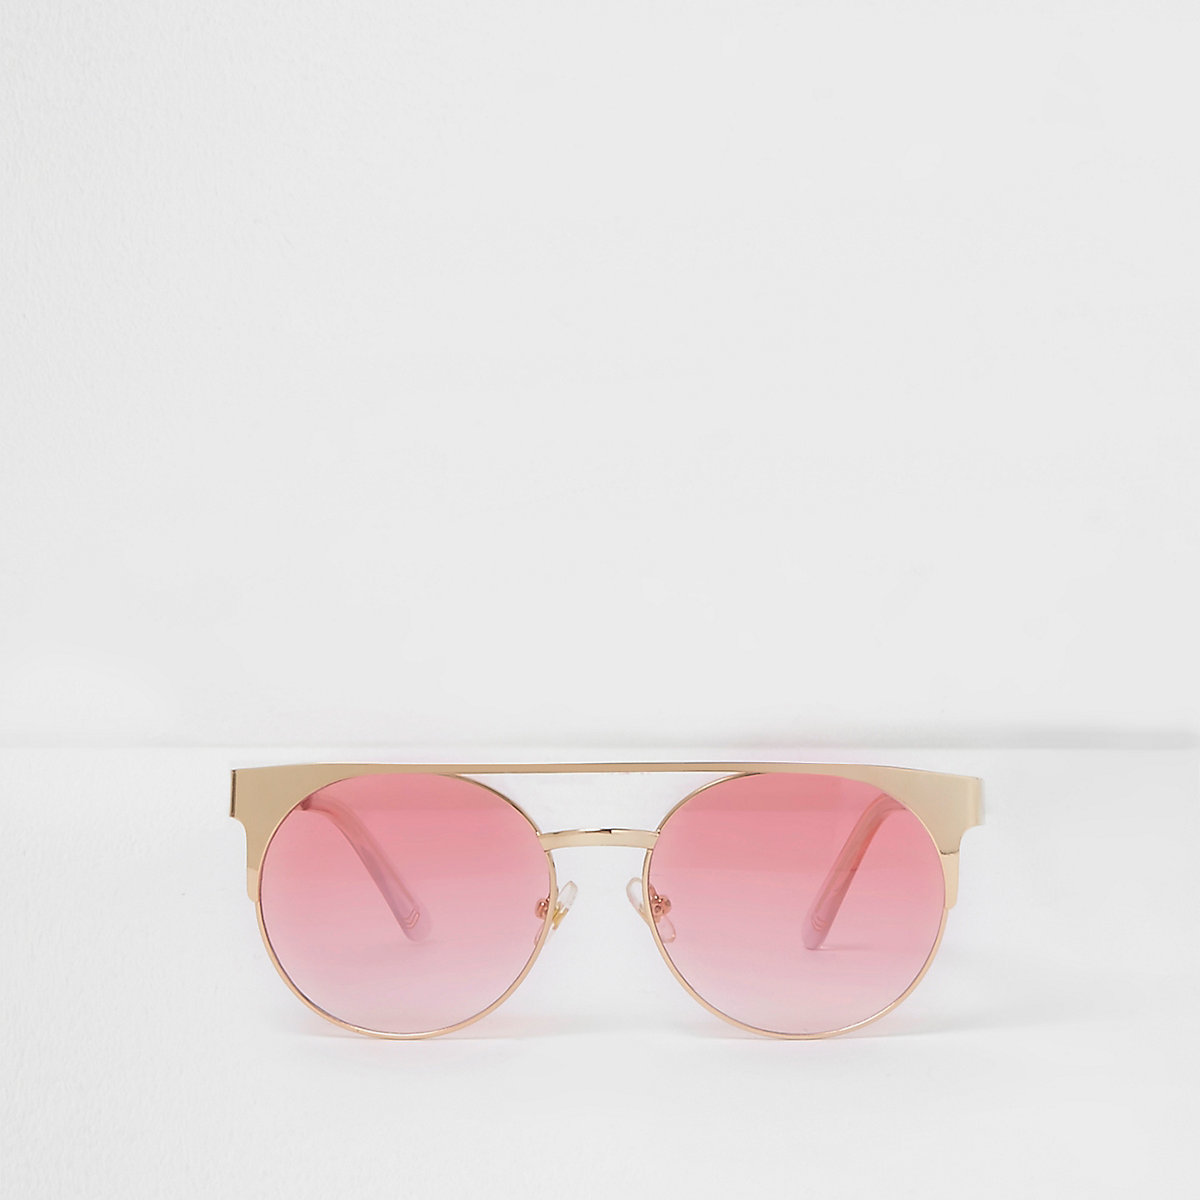 Girls gold tone and pink brow bar sunglasses